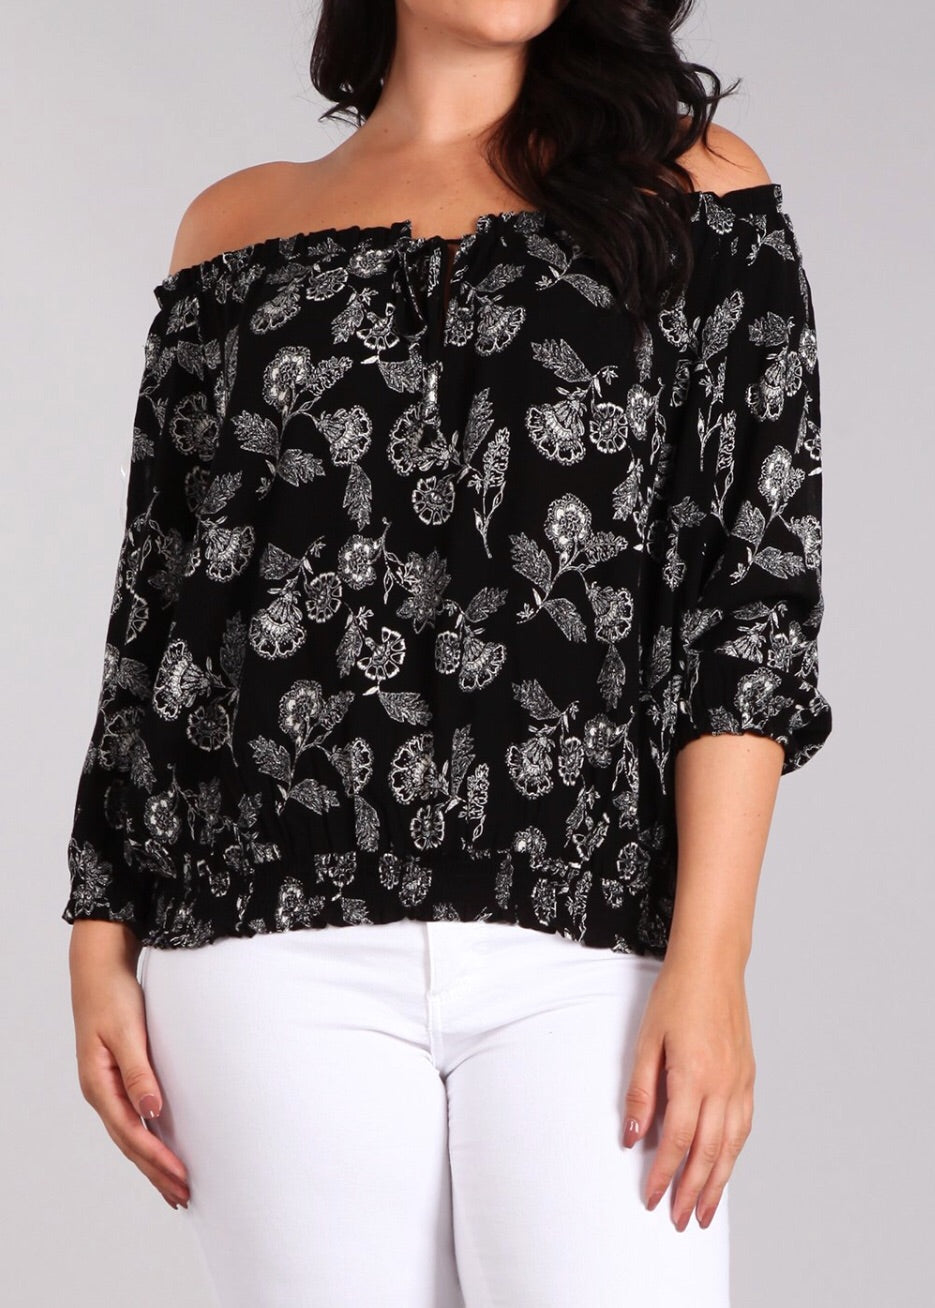 Bria Bella & Co - Black Floral Off-Shoulder